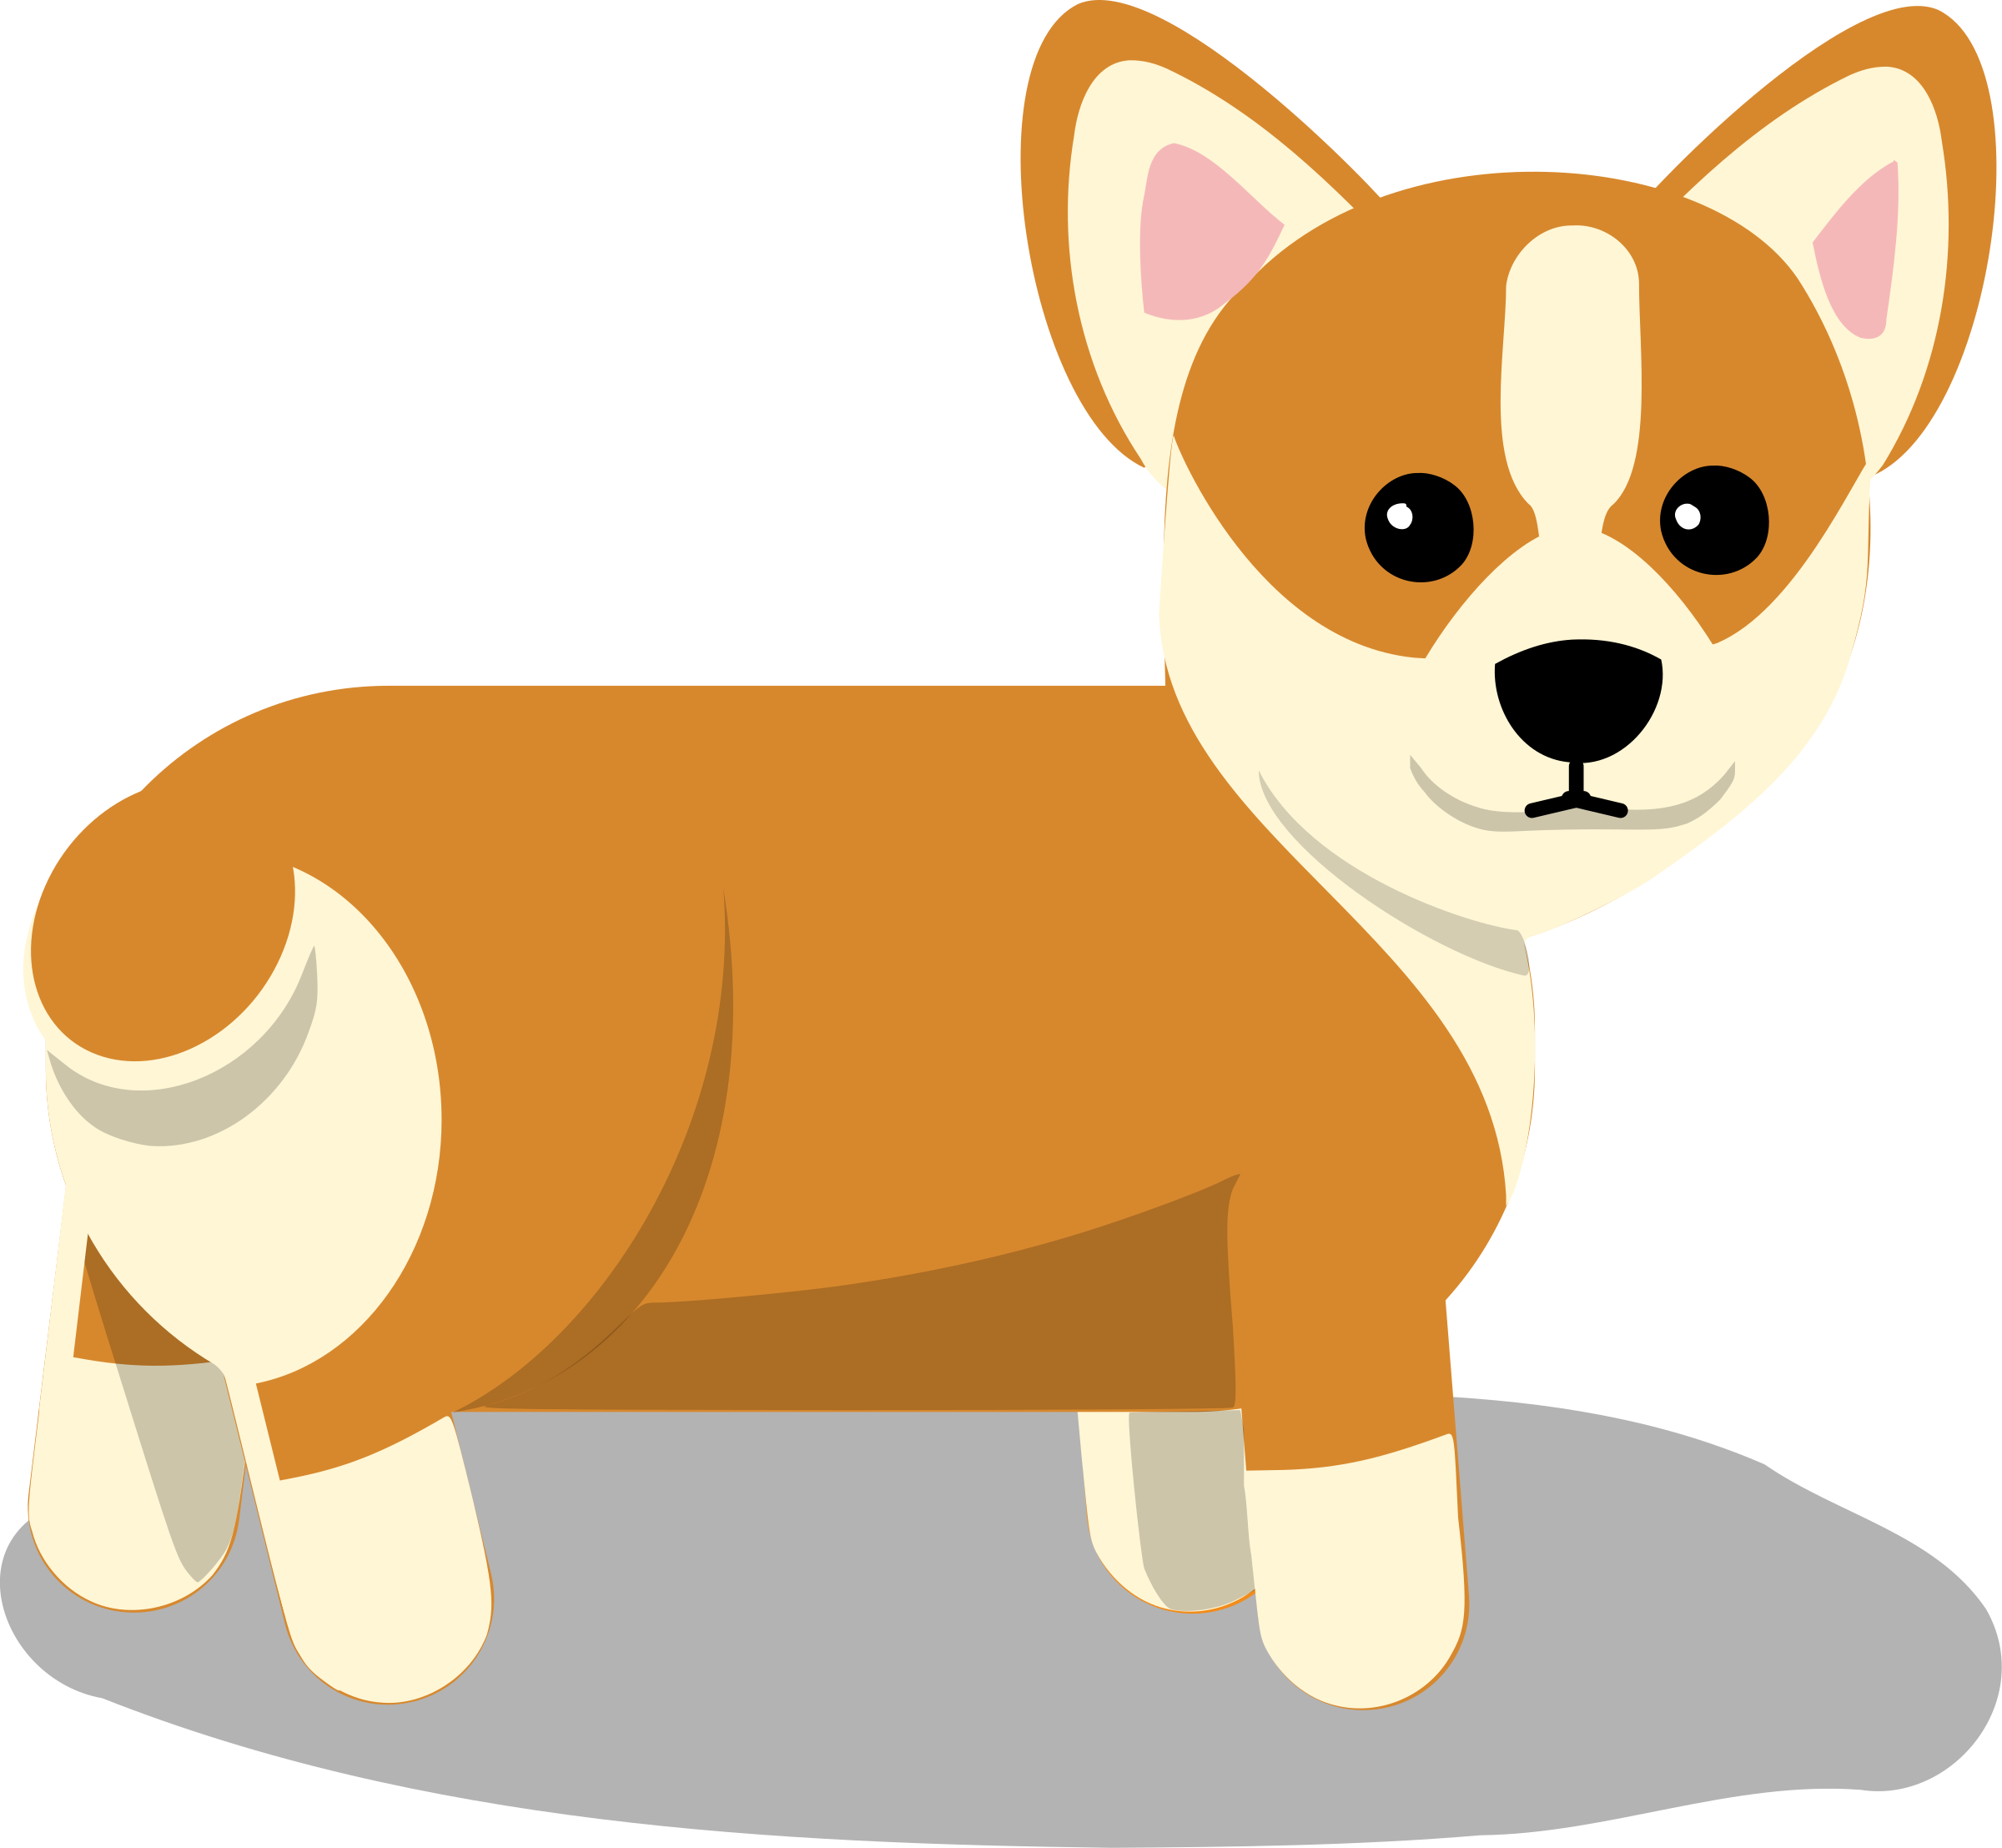 Pet clipart one dog. Corgi silhouette clip art